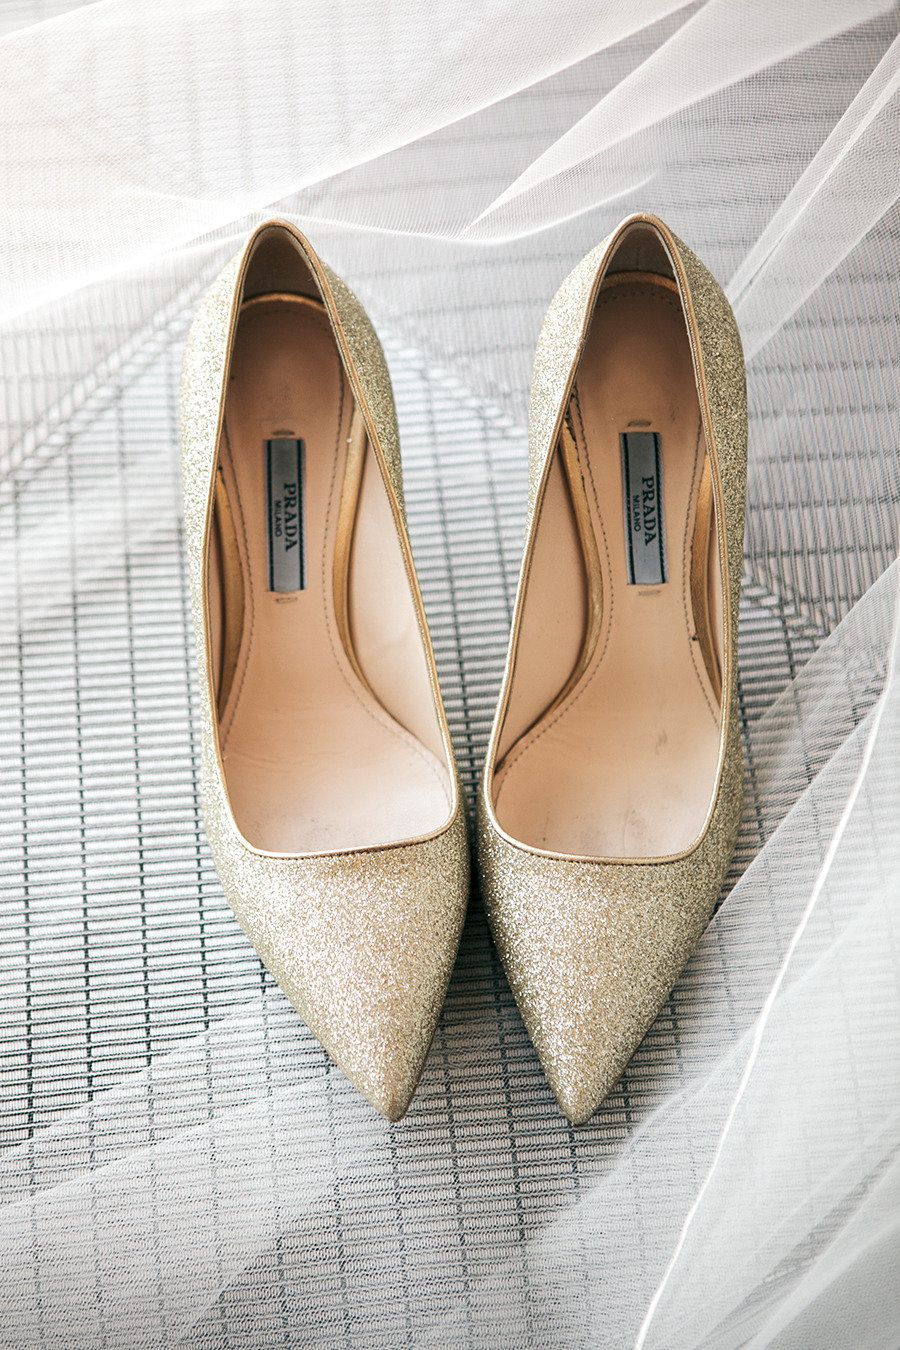 Sparkling Prada Shoes Photography By Melissaschollaertphotography Com Read More Http Www Stylemepretty Com 2013 Glittery Shoes Bridal Shoes Wedding Shoes